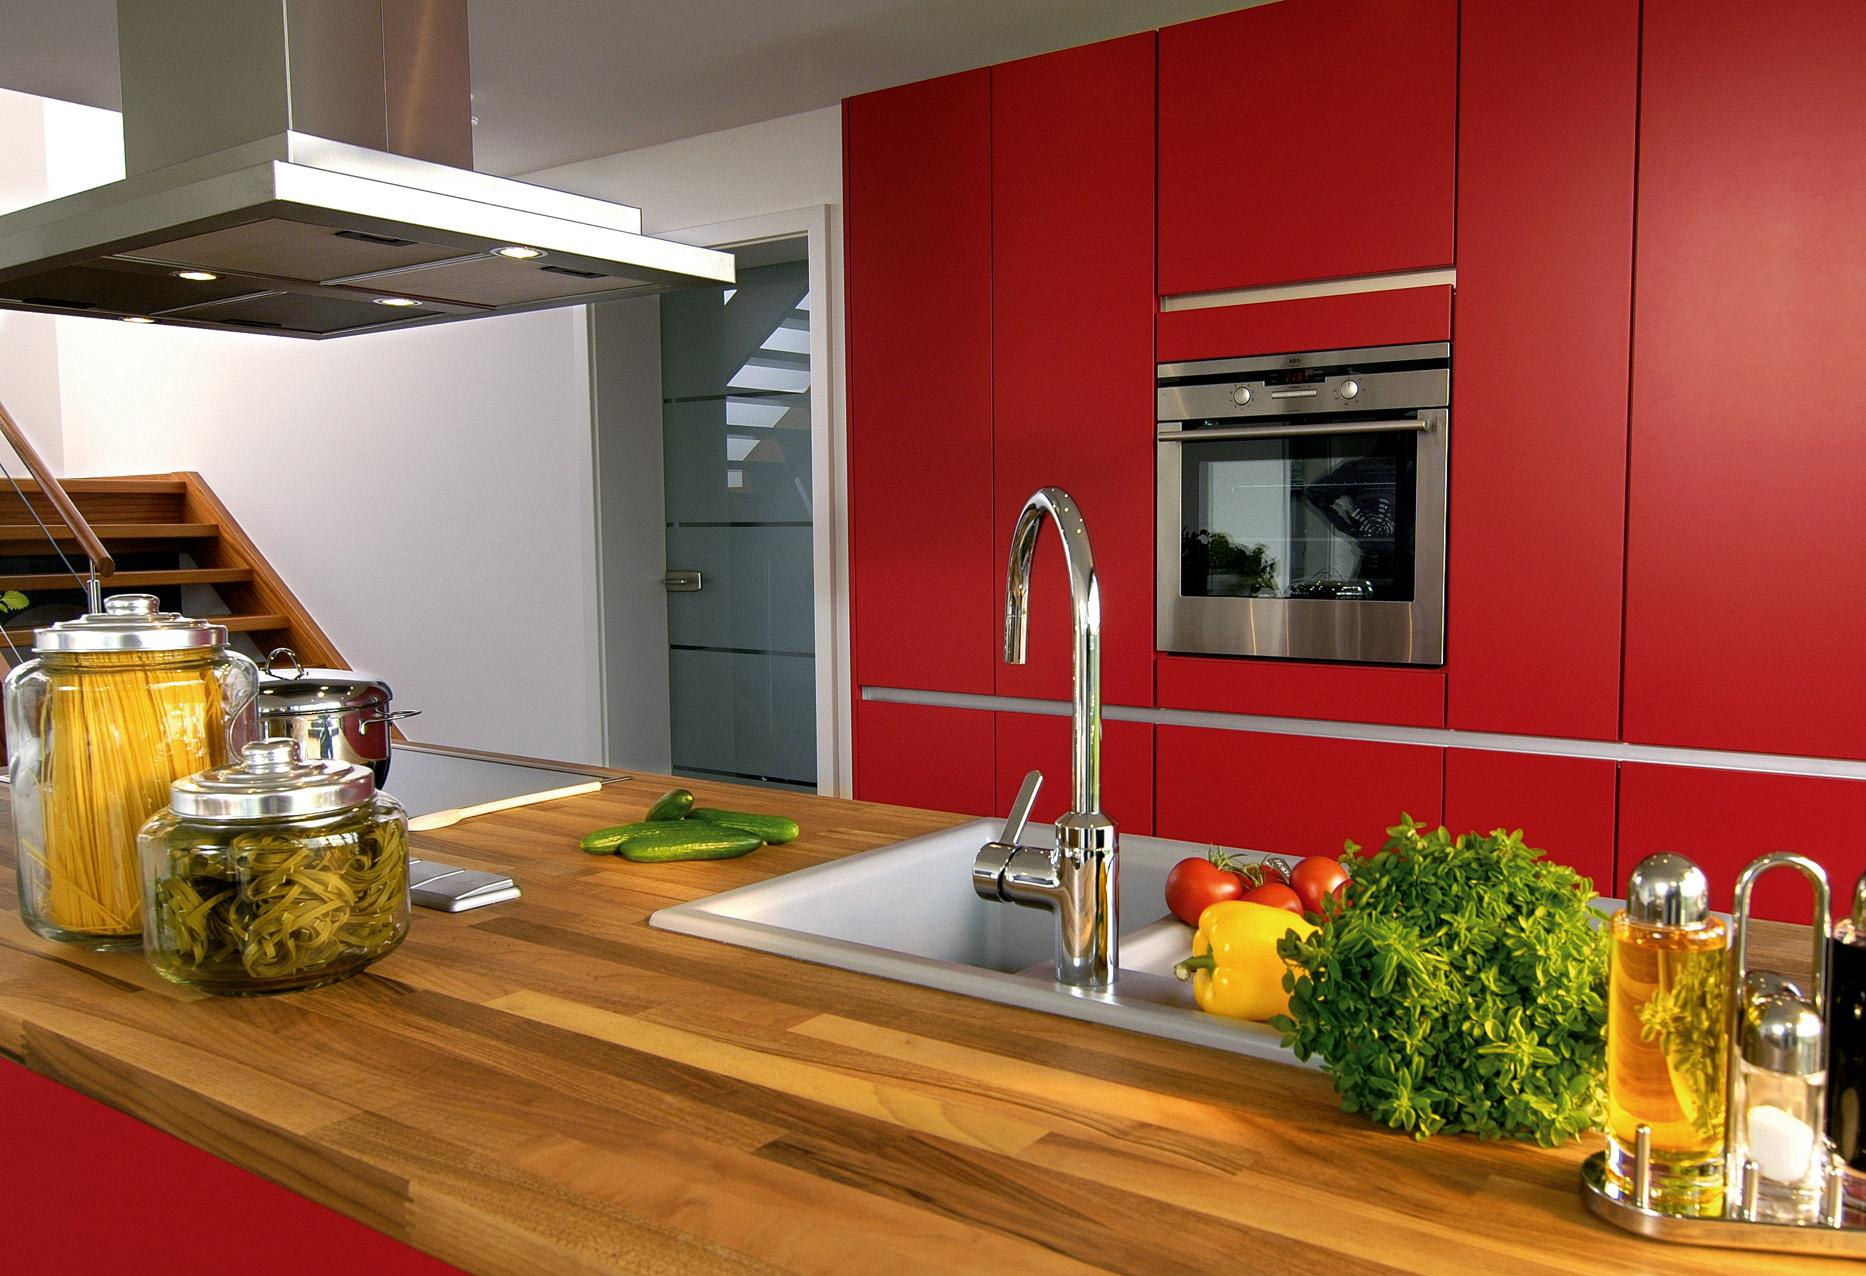 Red kitchen with wooden counter